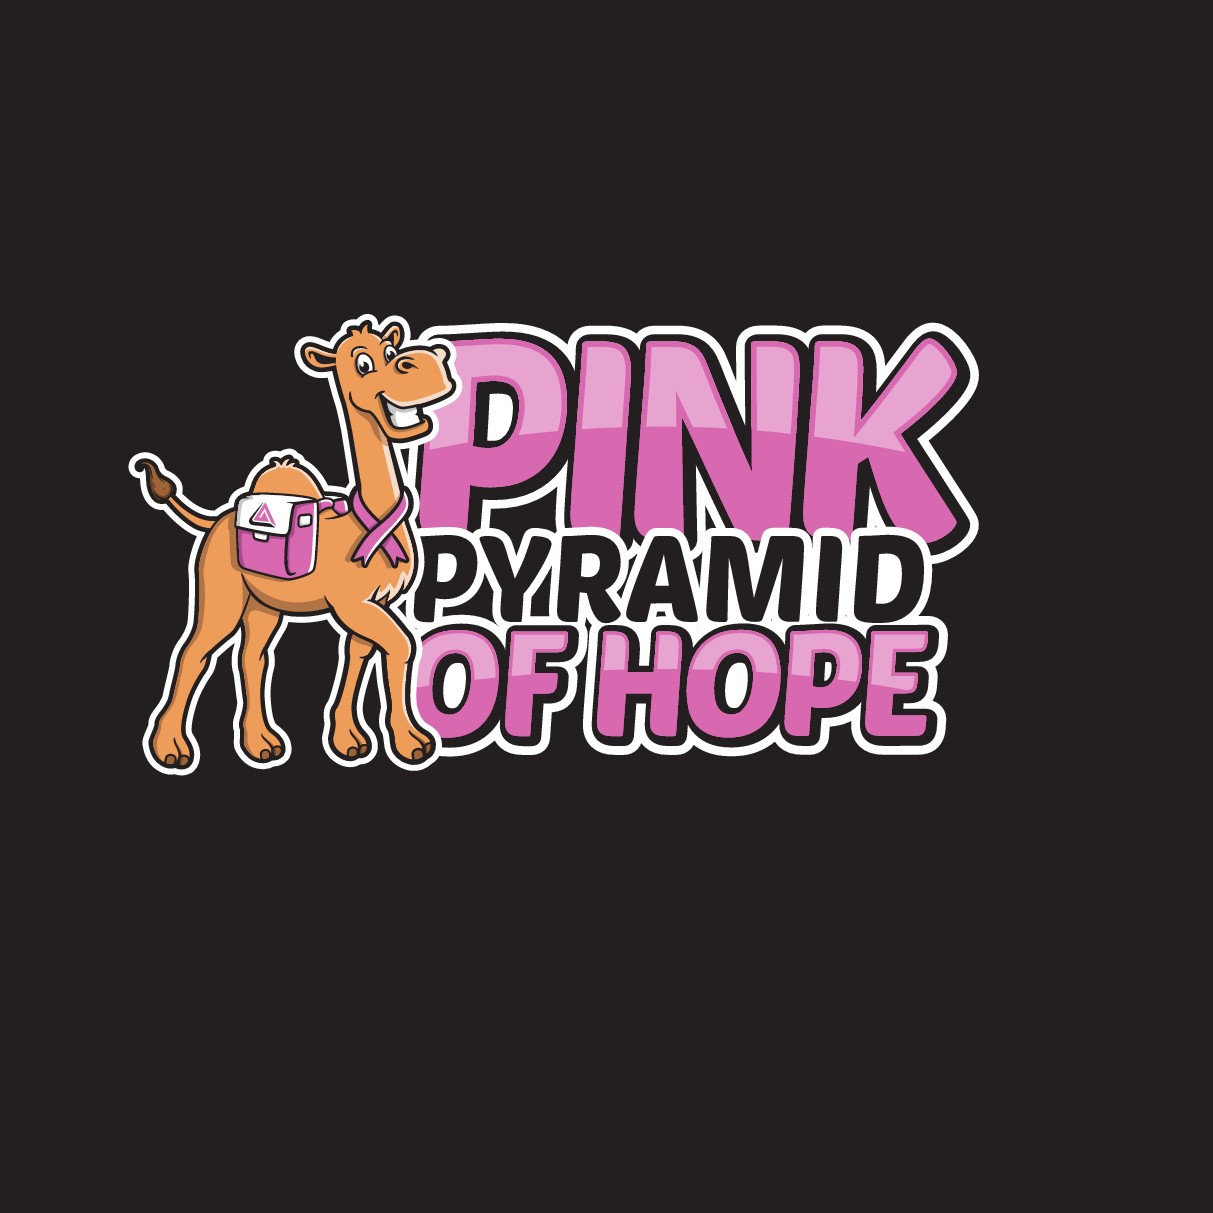 T-Shirt design for Breast Cancer Awareness